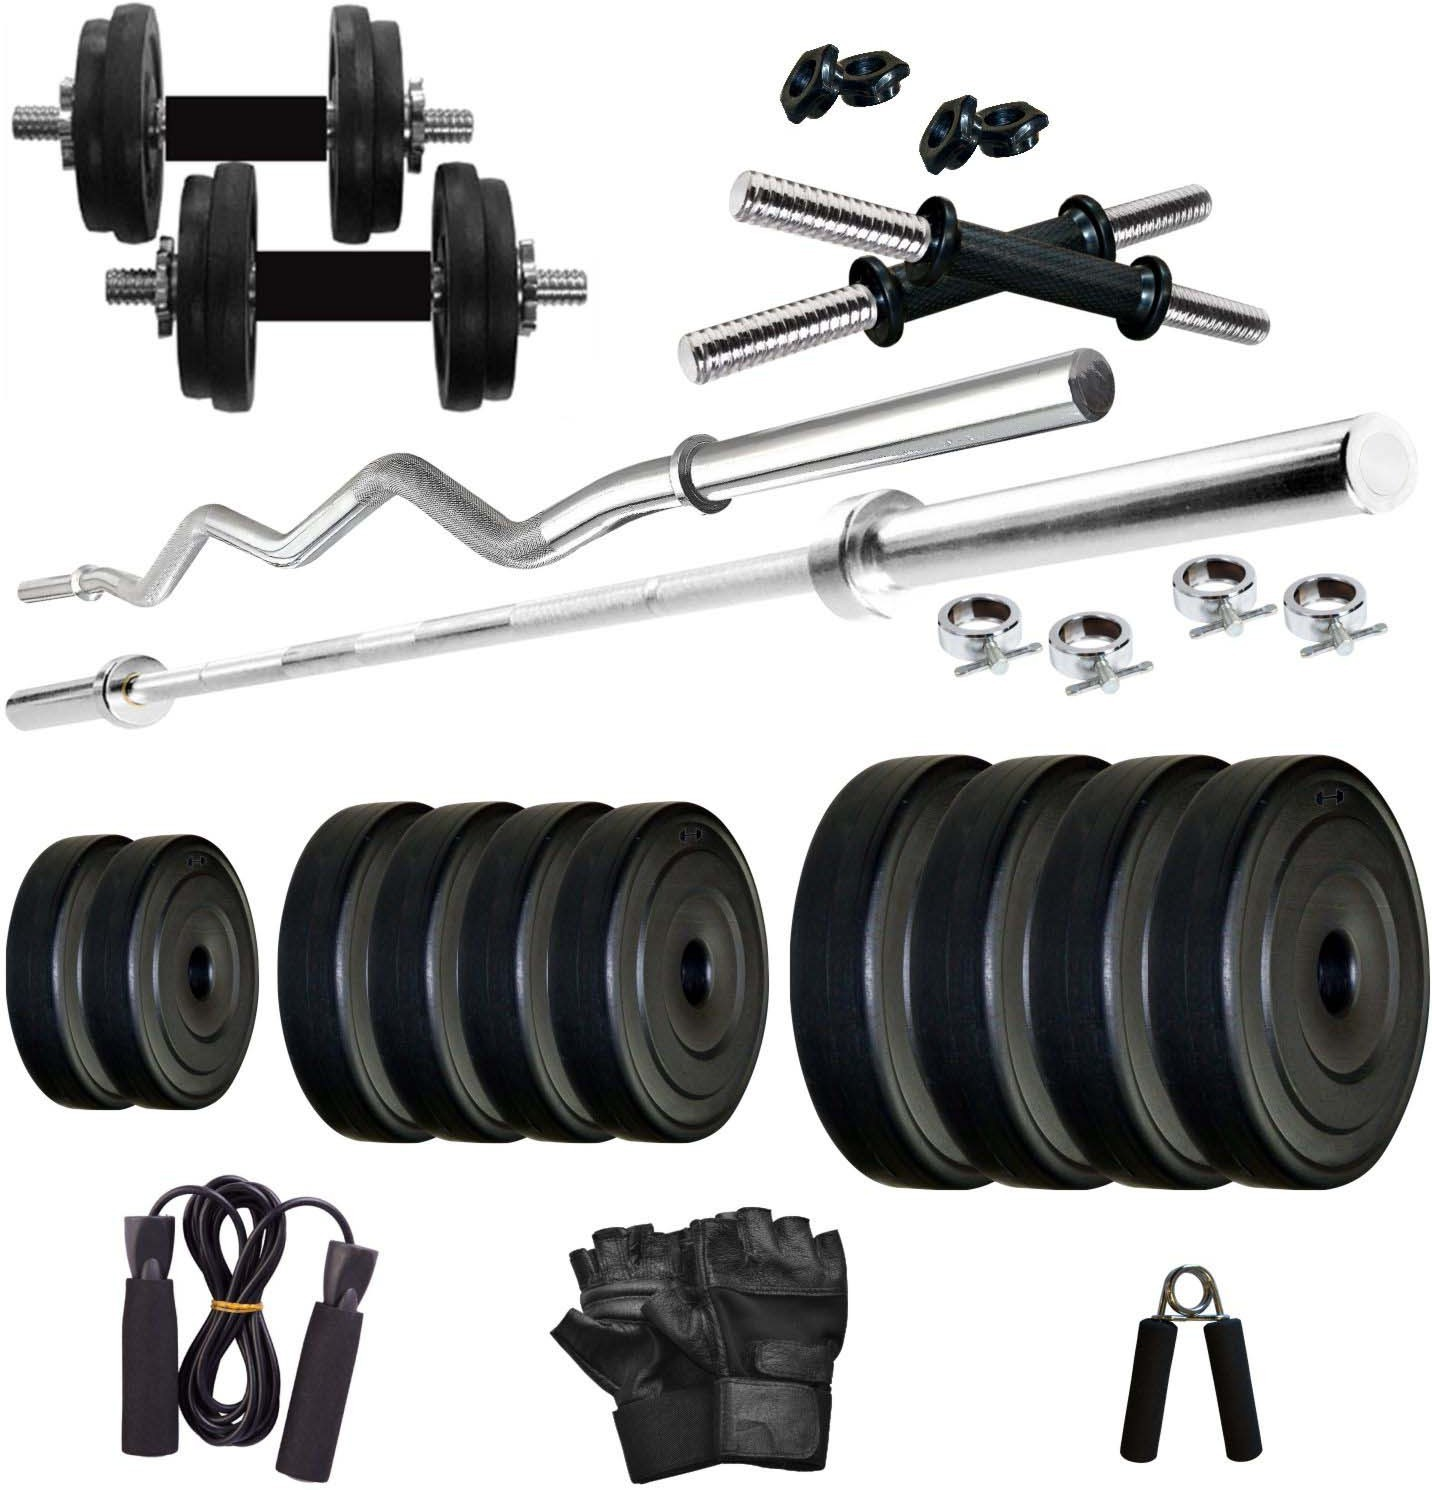 Deals | Homegym Combos Headly, KRX & More